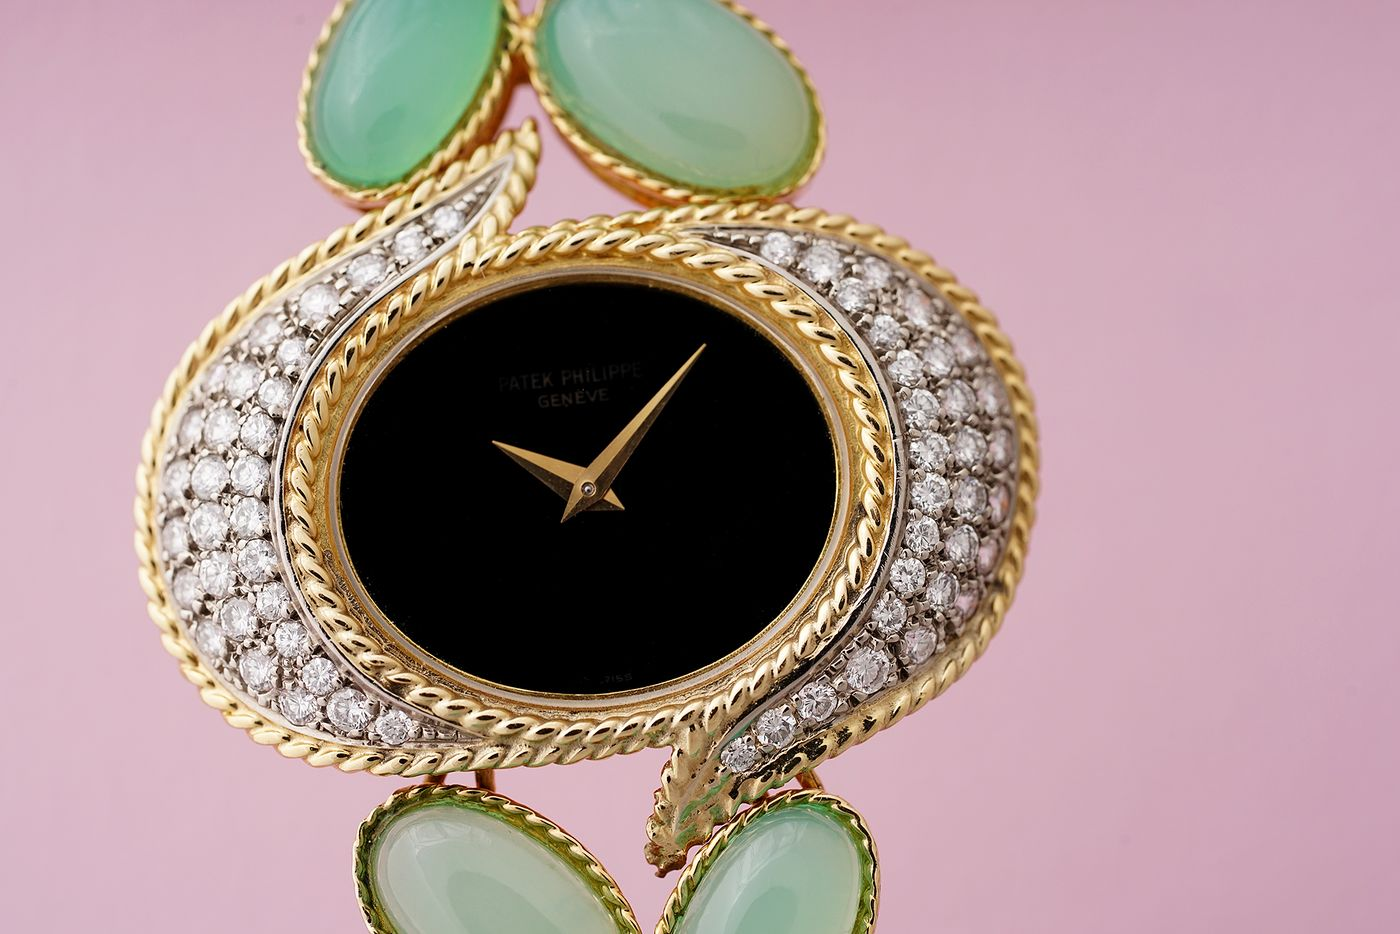 What do Marie Antoinette, Ellen DeGeneres and Catherine Deneuve have in common? Answer: A taste for beautiful watches. Our Geneva Specialist Tiffany To presents some of the iconic timepieces they have owned.